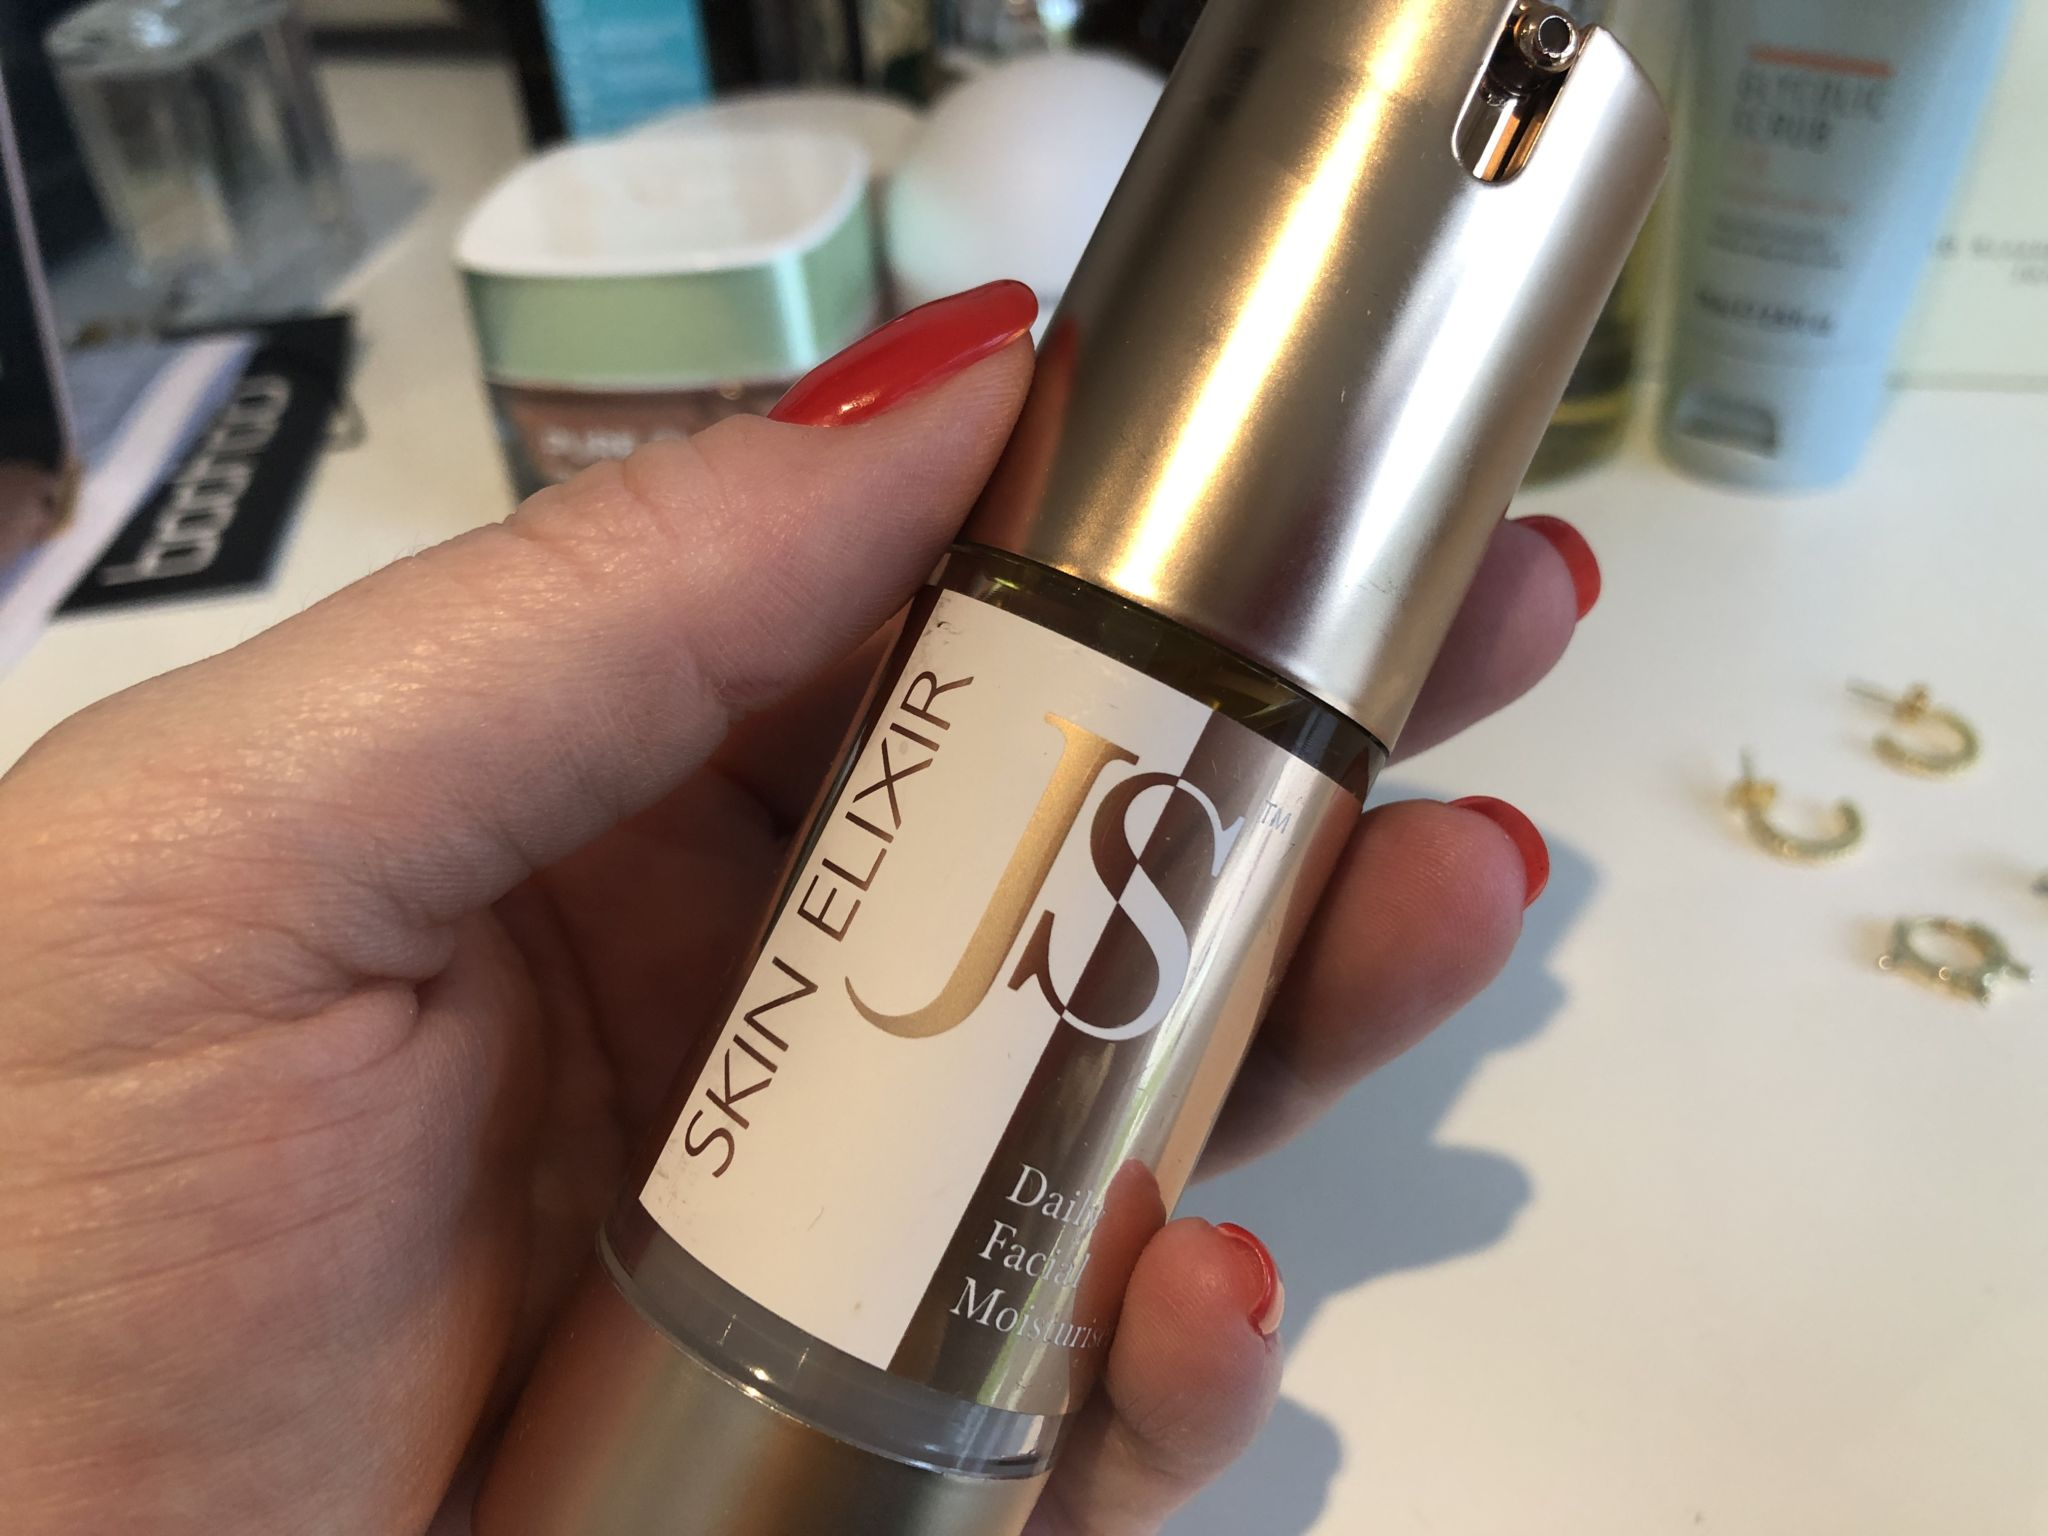 Jane Scrivner Skin Elixir Review